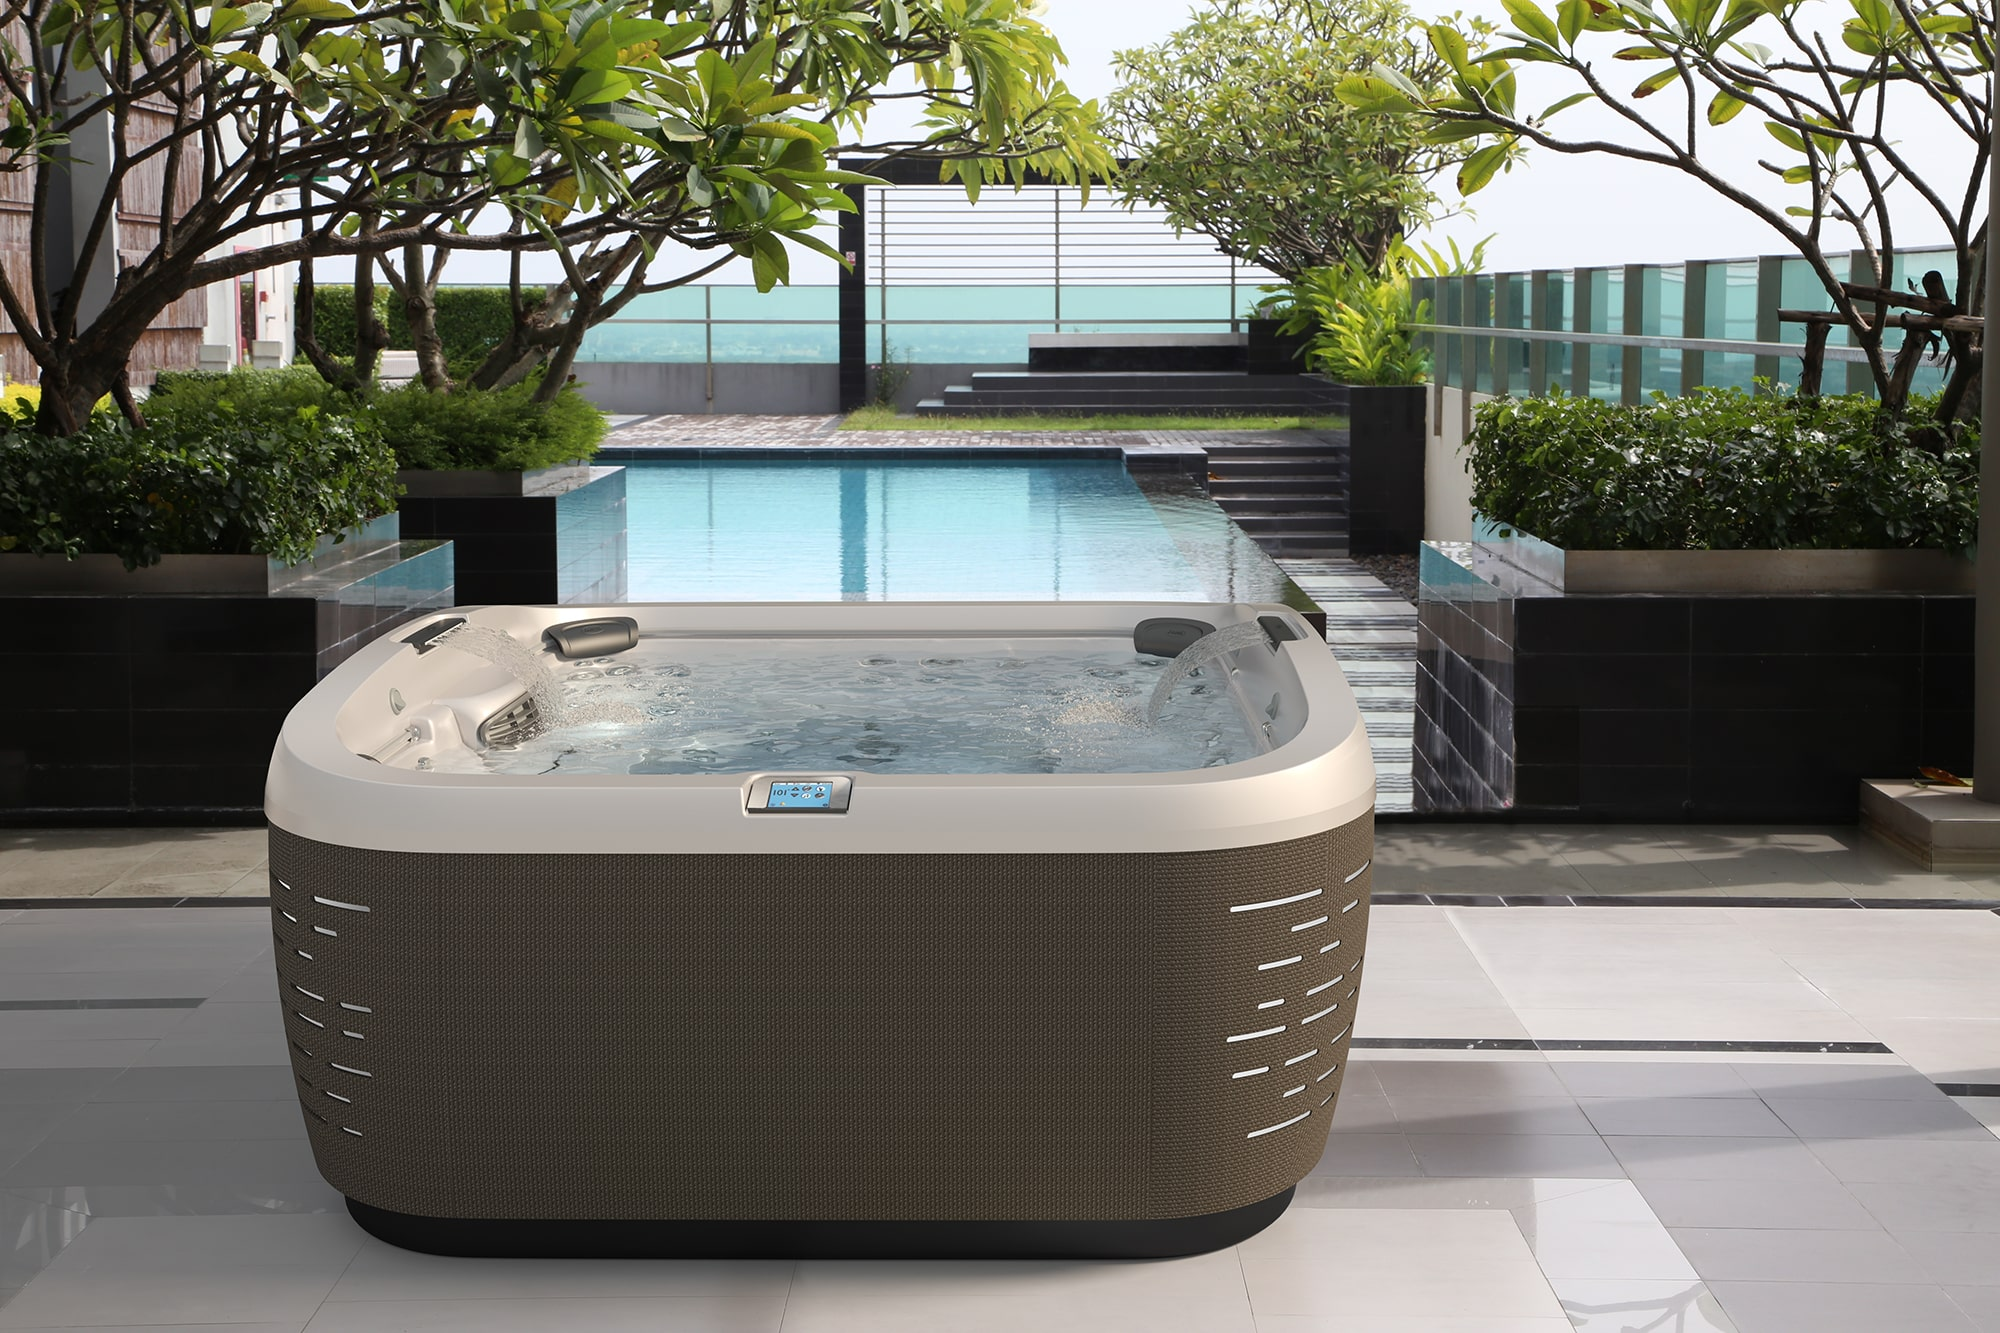 J-585 Jacuzzi Hot Tub installation in Ontario